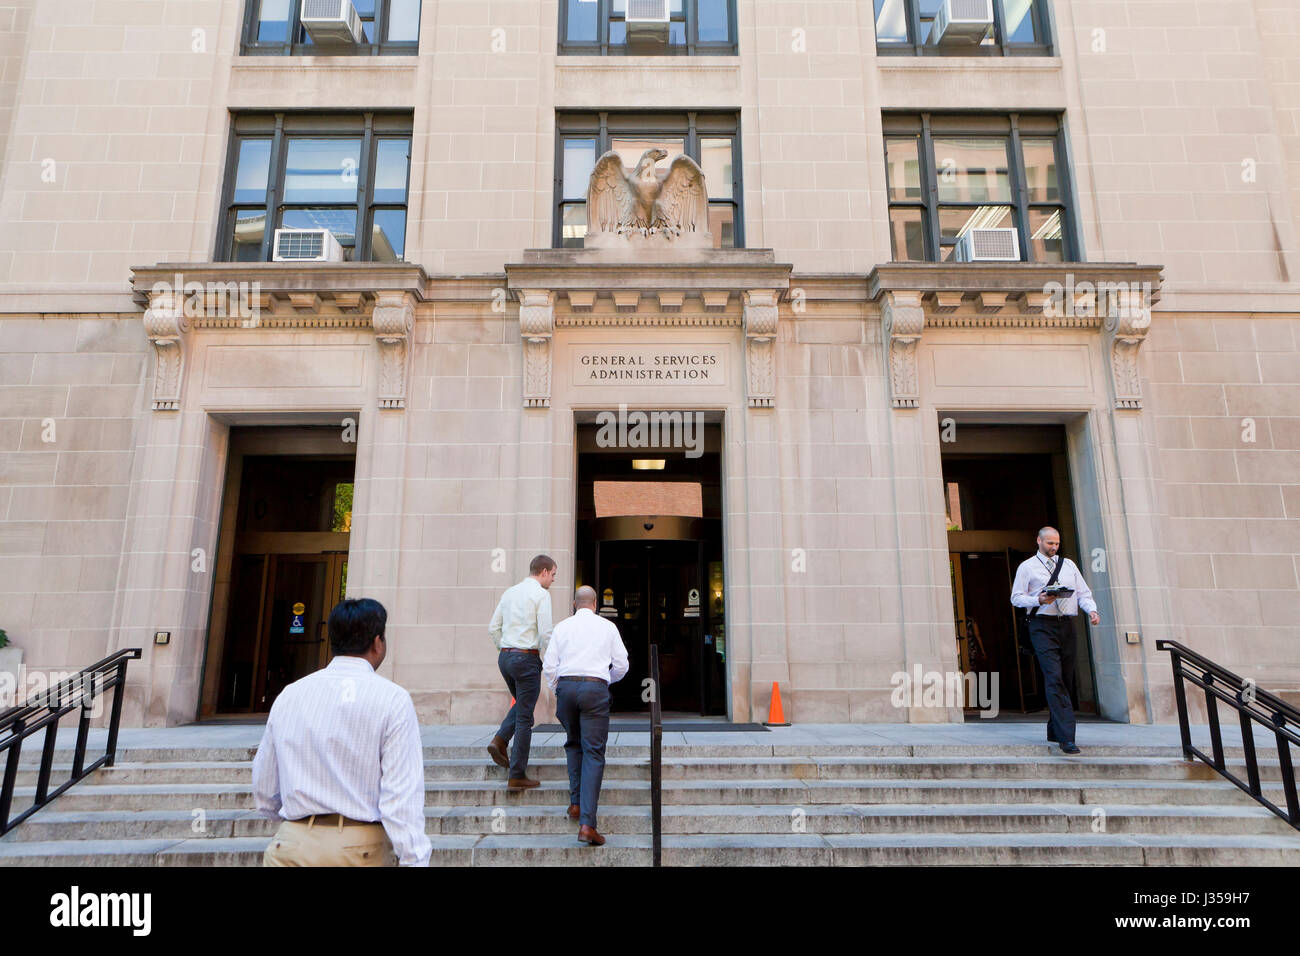 General Services Administration building - Washington, DC USA - Stock Image